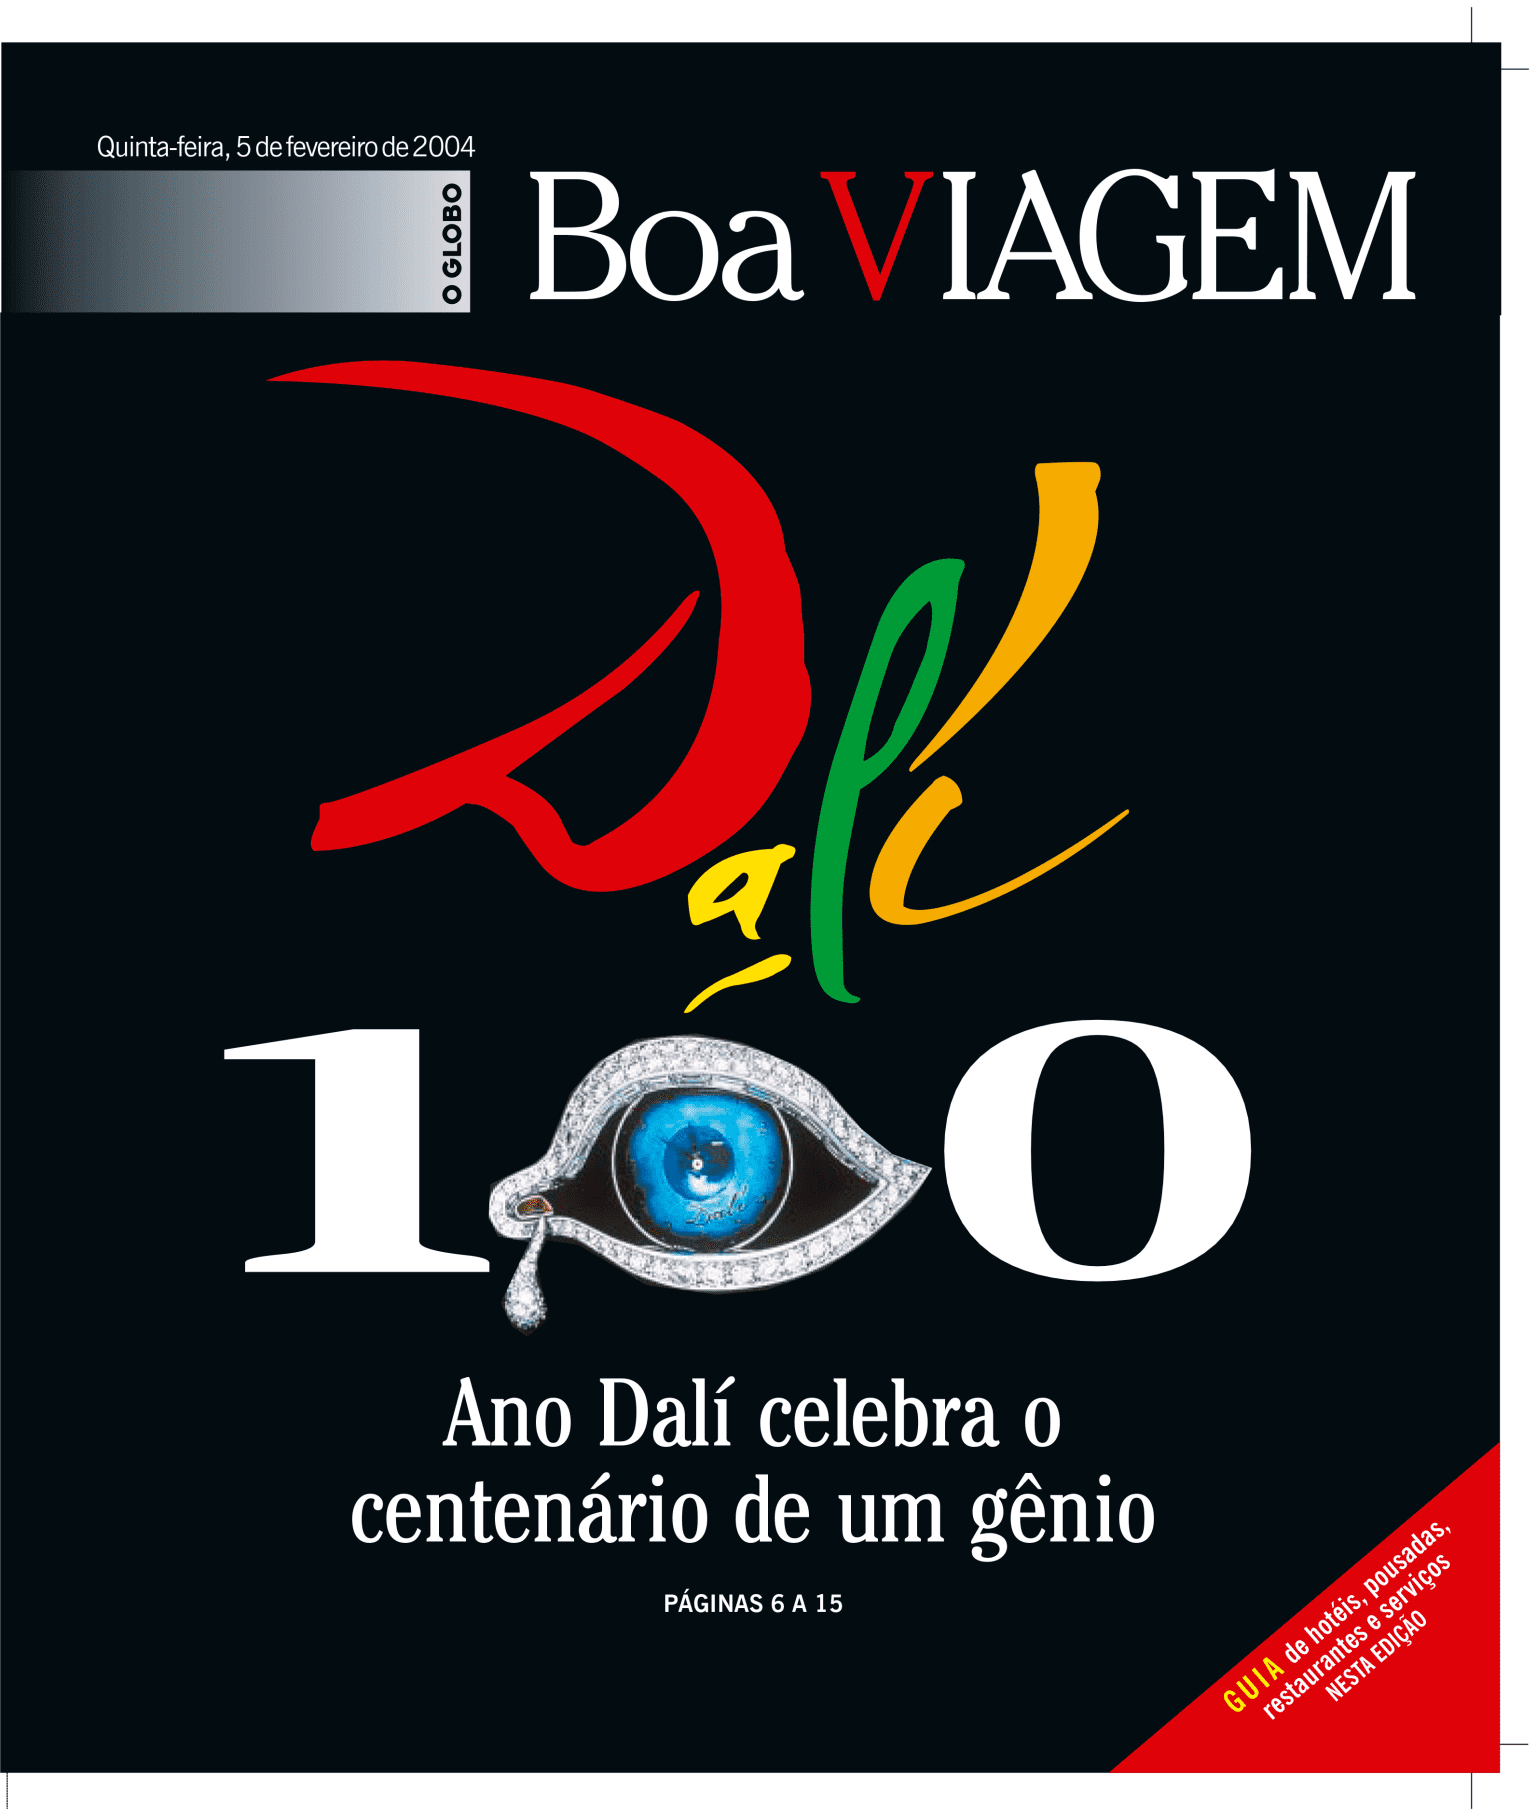 O Globo - Cover: Tourism Section - 100 years of Dali